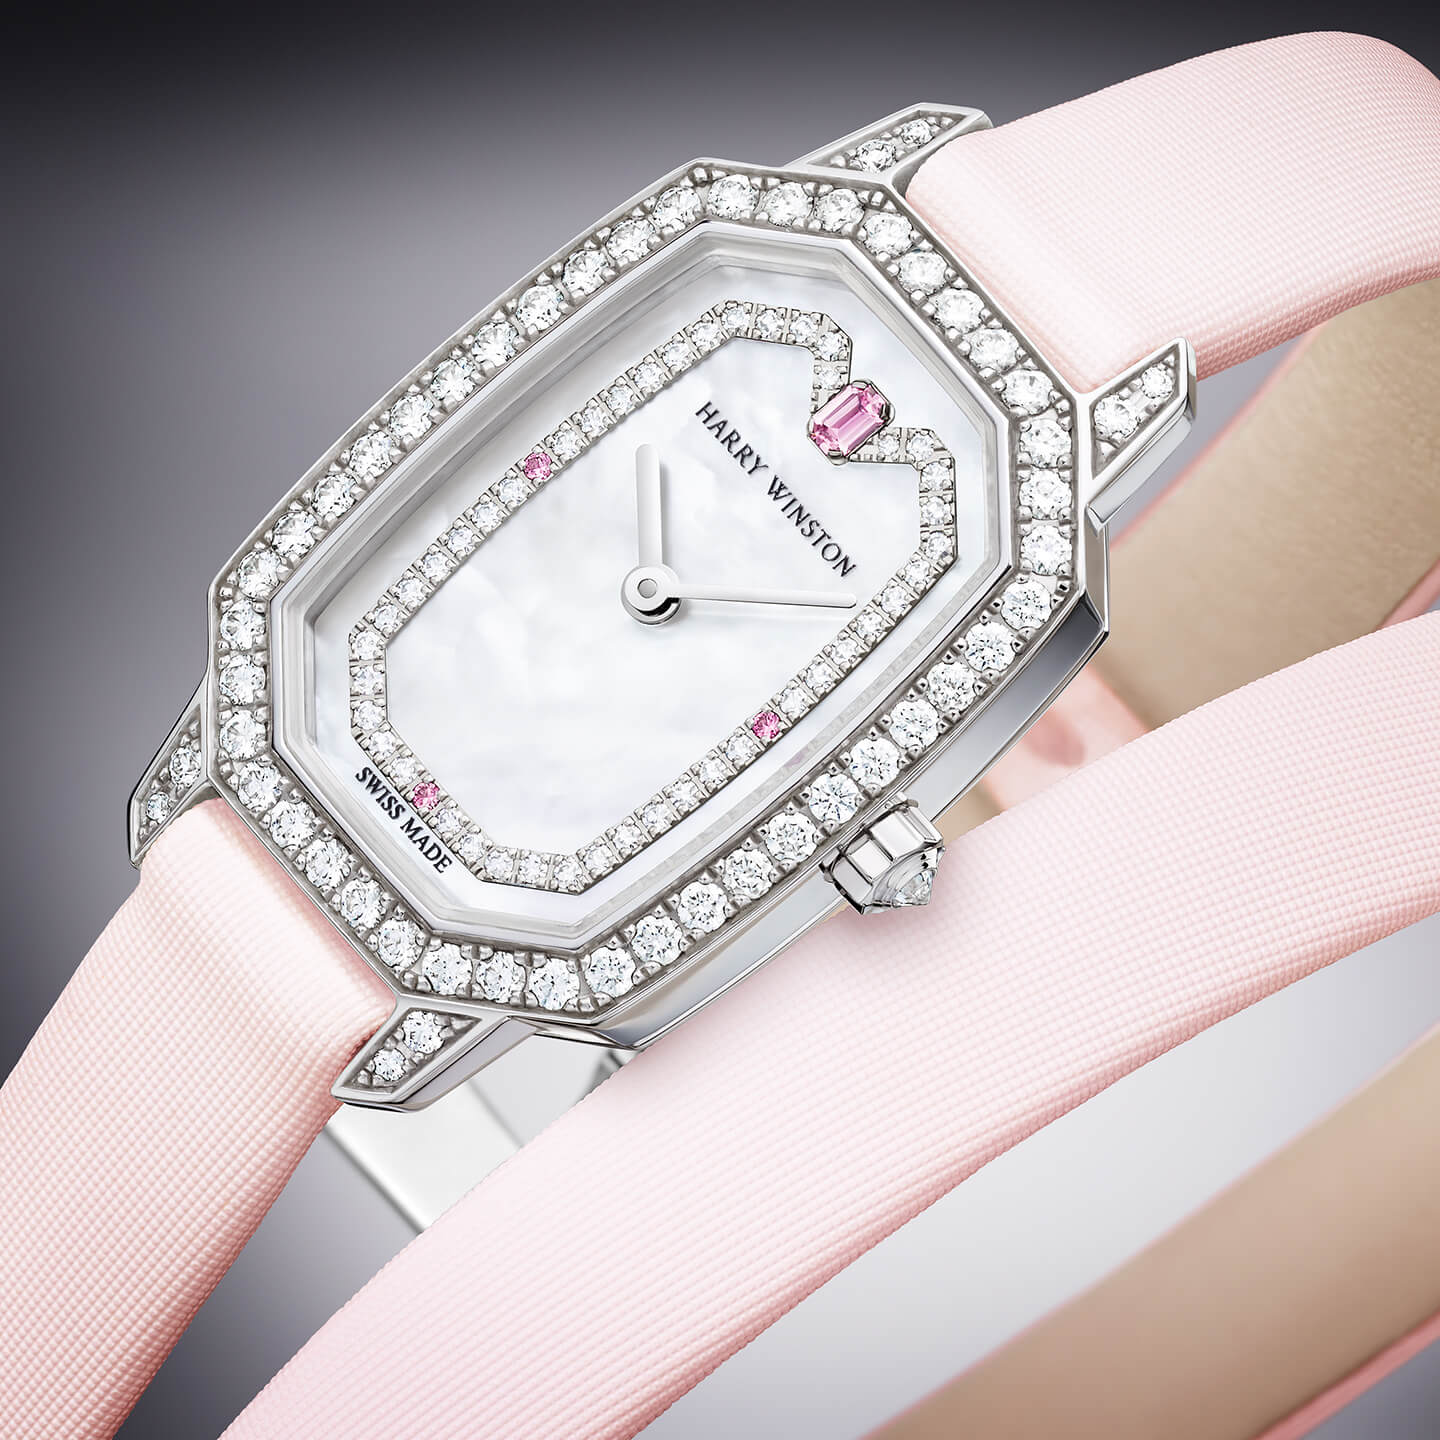 Harry Winston introduces the first new timepiece of its 2018 collection